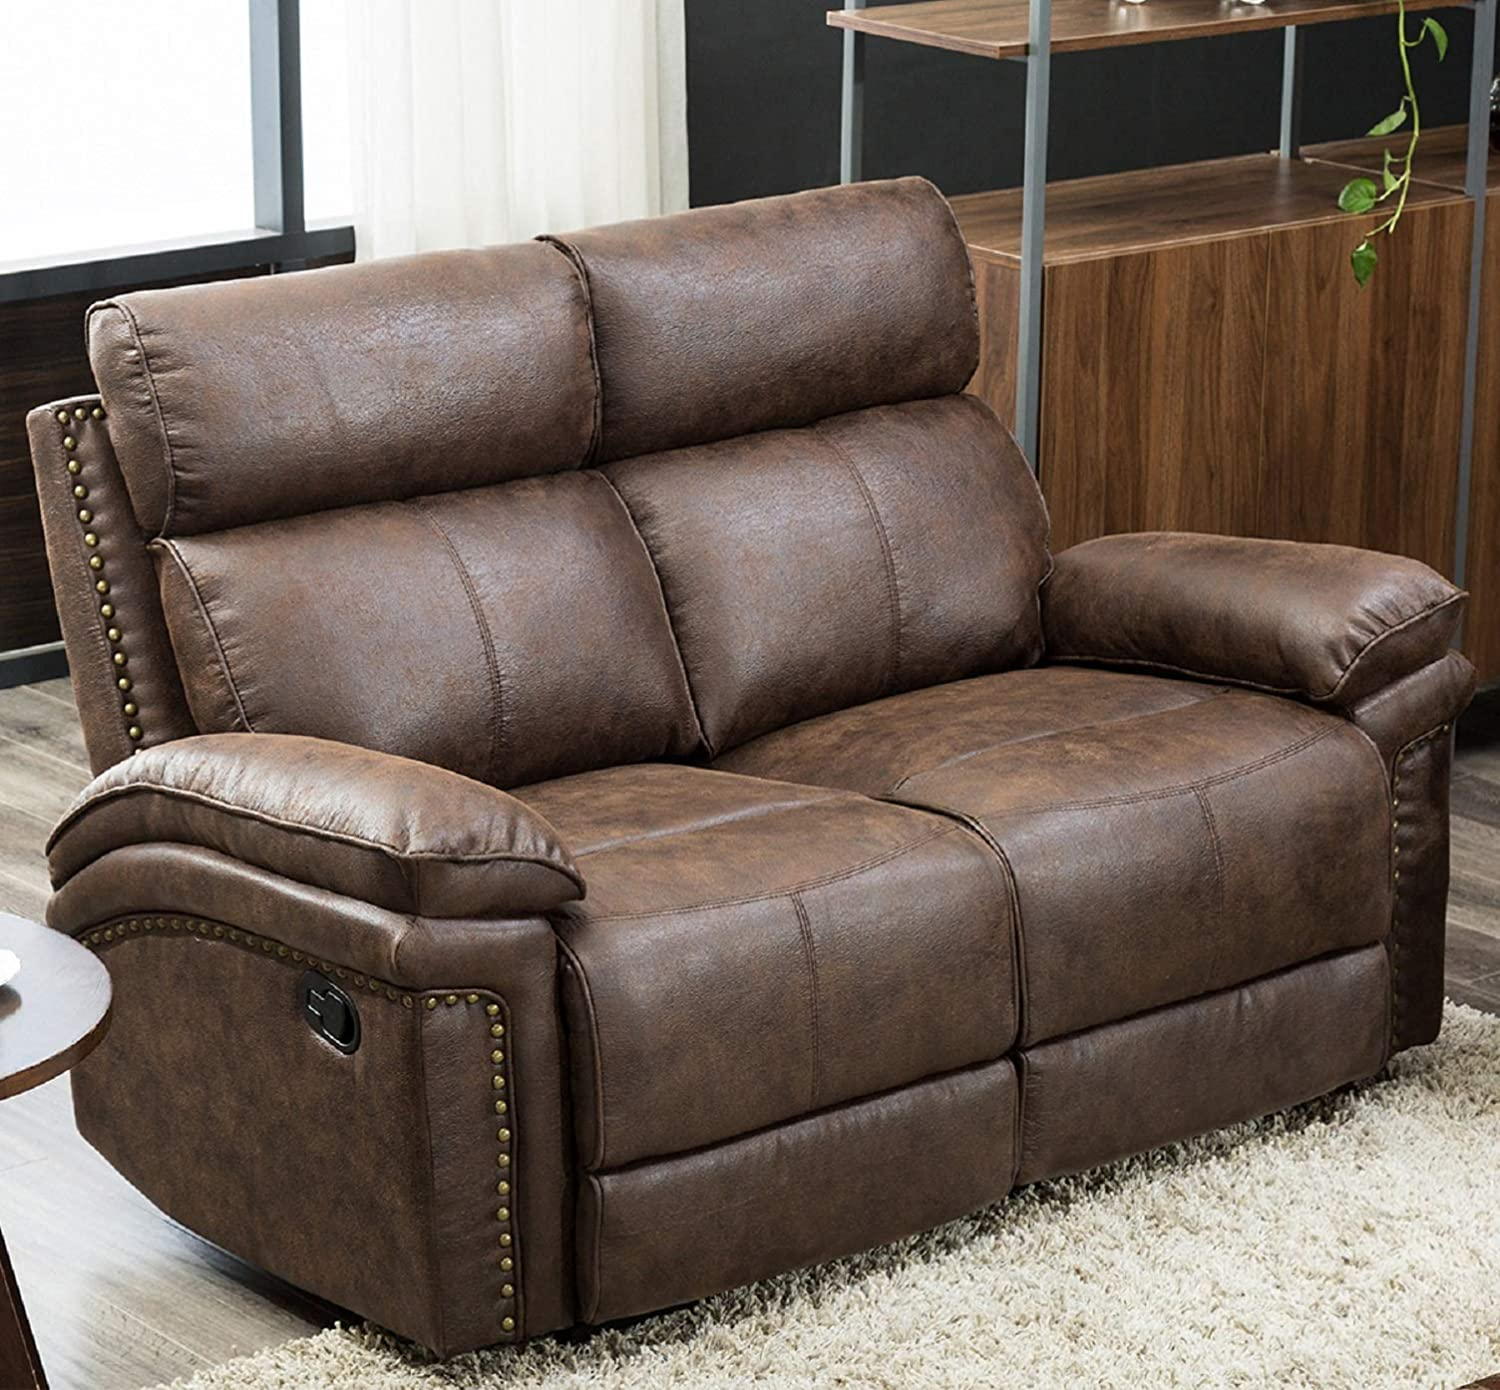 FLIEKS Loveseat Leather Modern Sofa Reclining Sofa Couch Recliner Chair  Leather Chair Sofa Sets for Living Room (Brown)